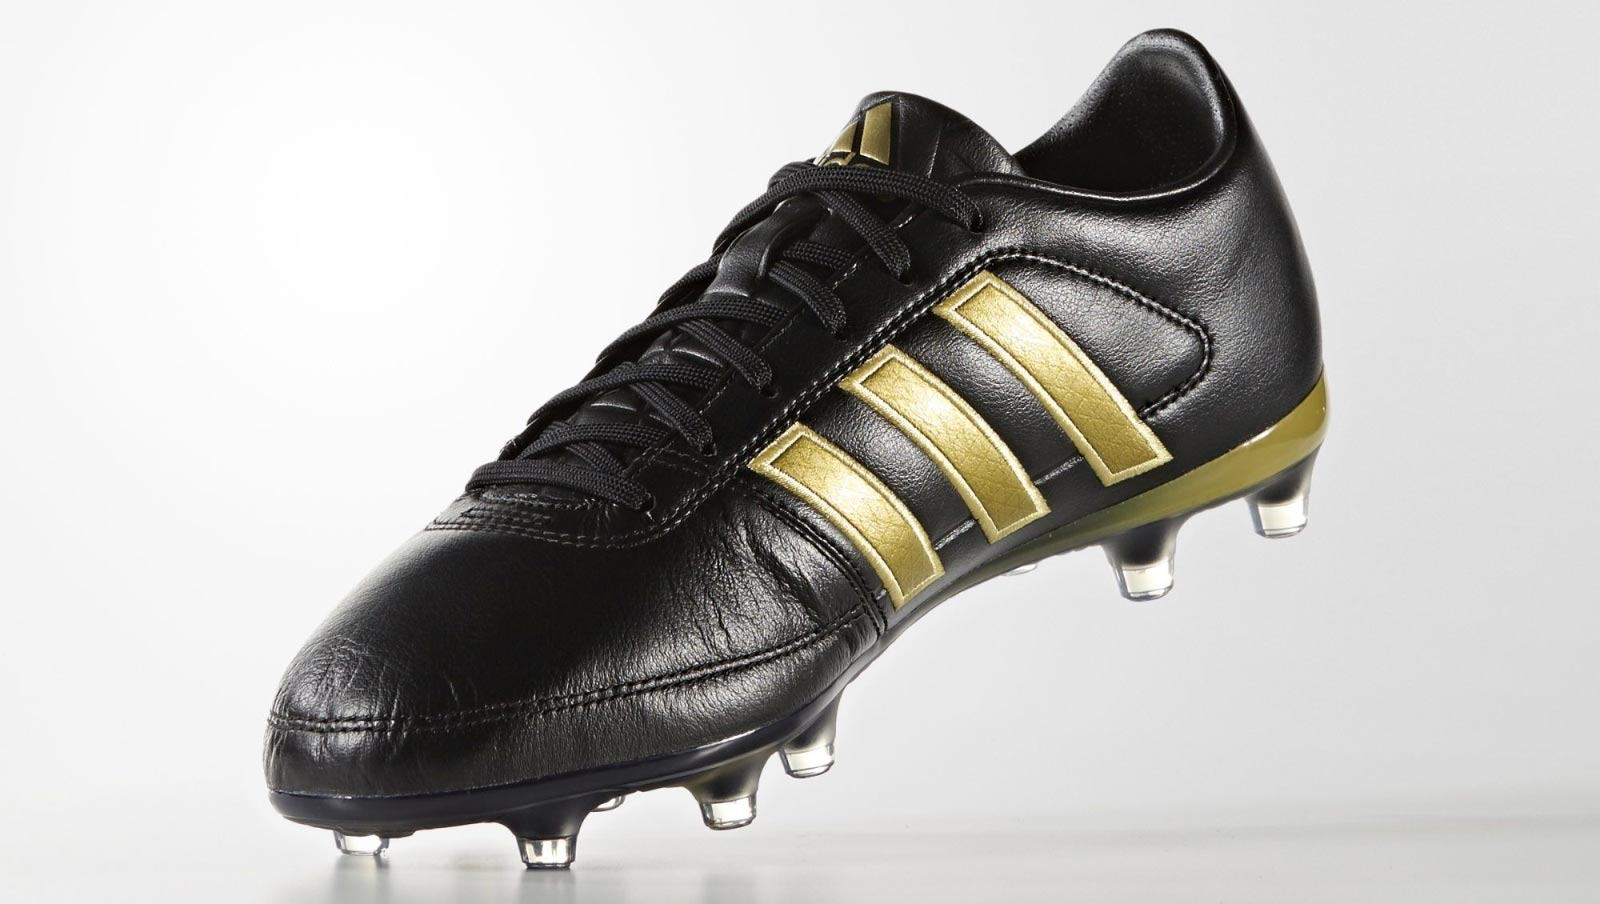 Black / Gold Adidas Gloro 2016-2017 Boots Released - Footy ...